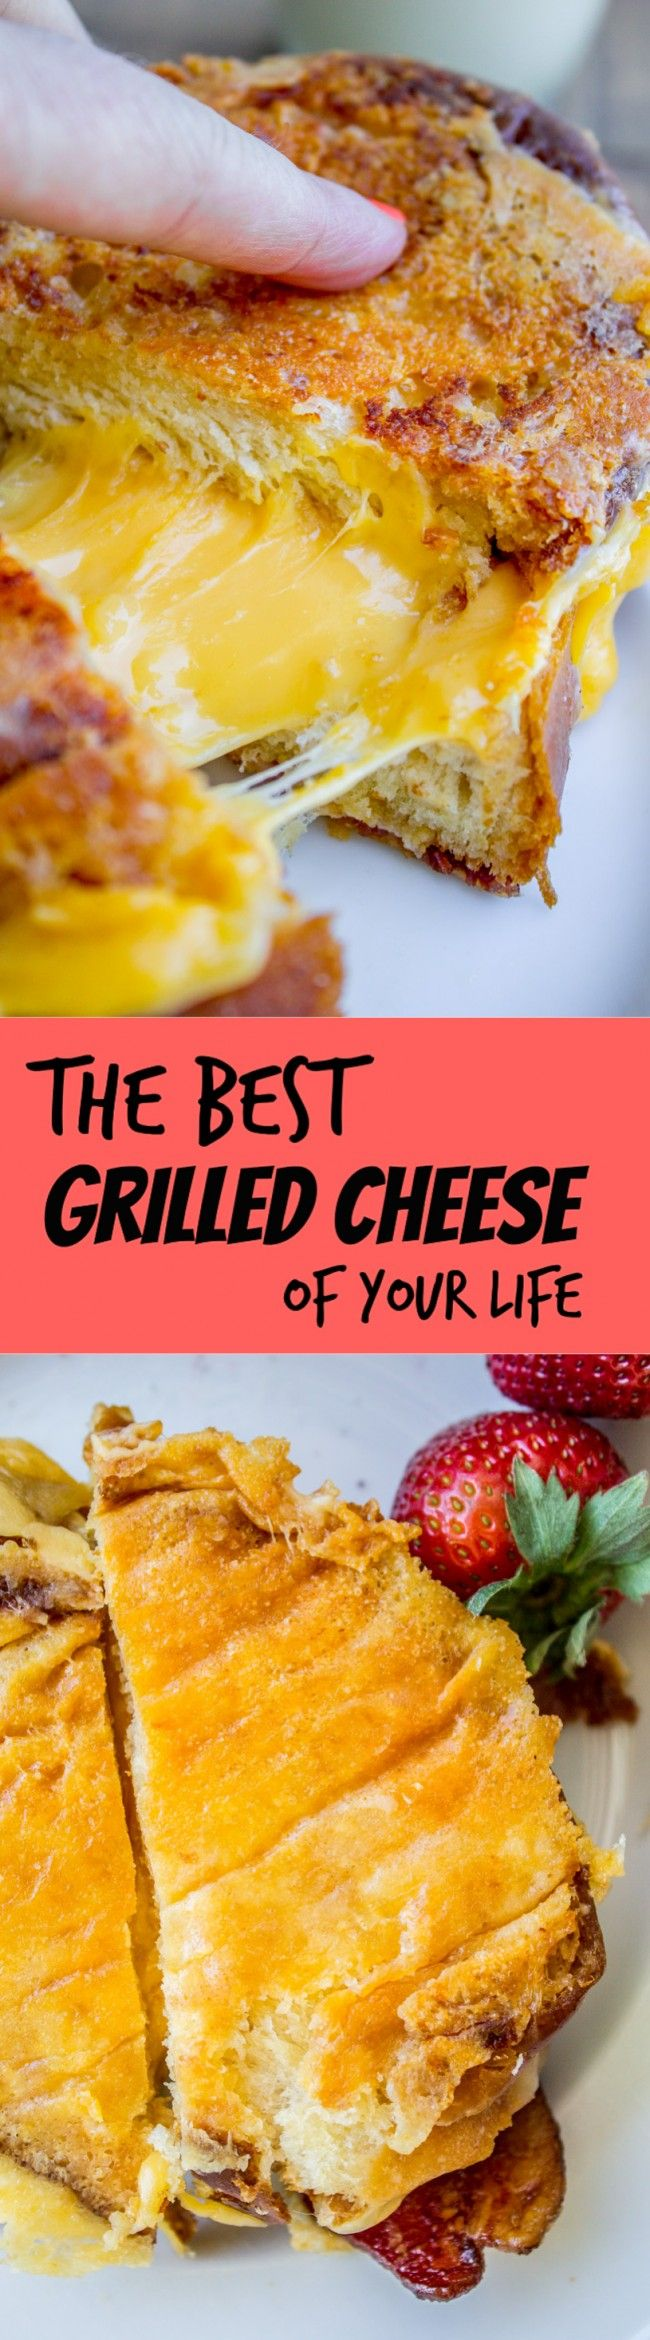 The Best Grilled Cheese of Your Life from The Food Charlatan. Grilled cheese doesn't deserve a post on my food blog, you say? WRONG! Fresh challah bread, ultra stretchy cheese in the middle, crispity crunchy cheese skirt on the outside of the sandwich. Did I mention the bacon? BOOM. This is the bet childhood memory, kicked up a notch.